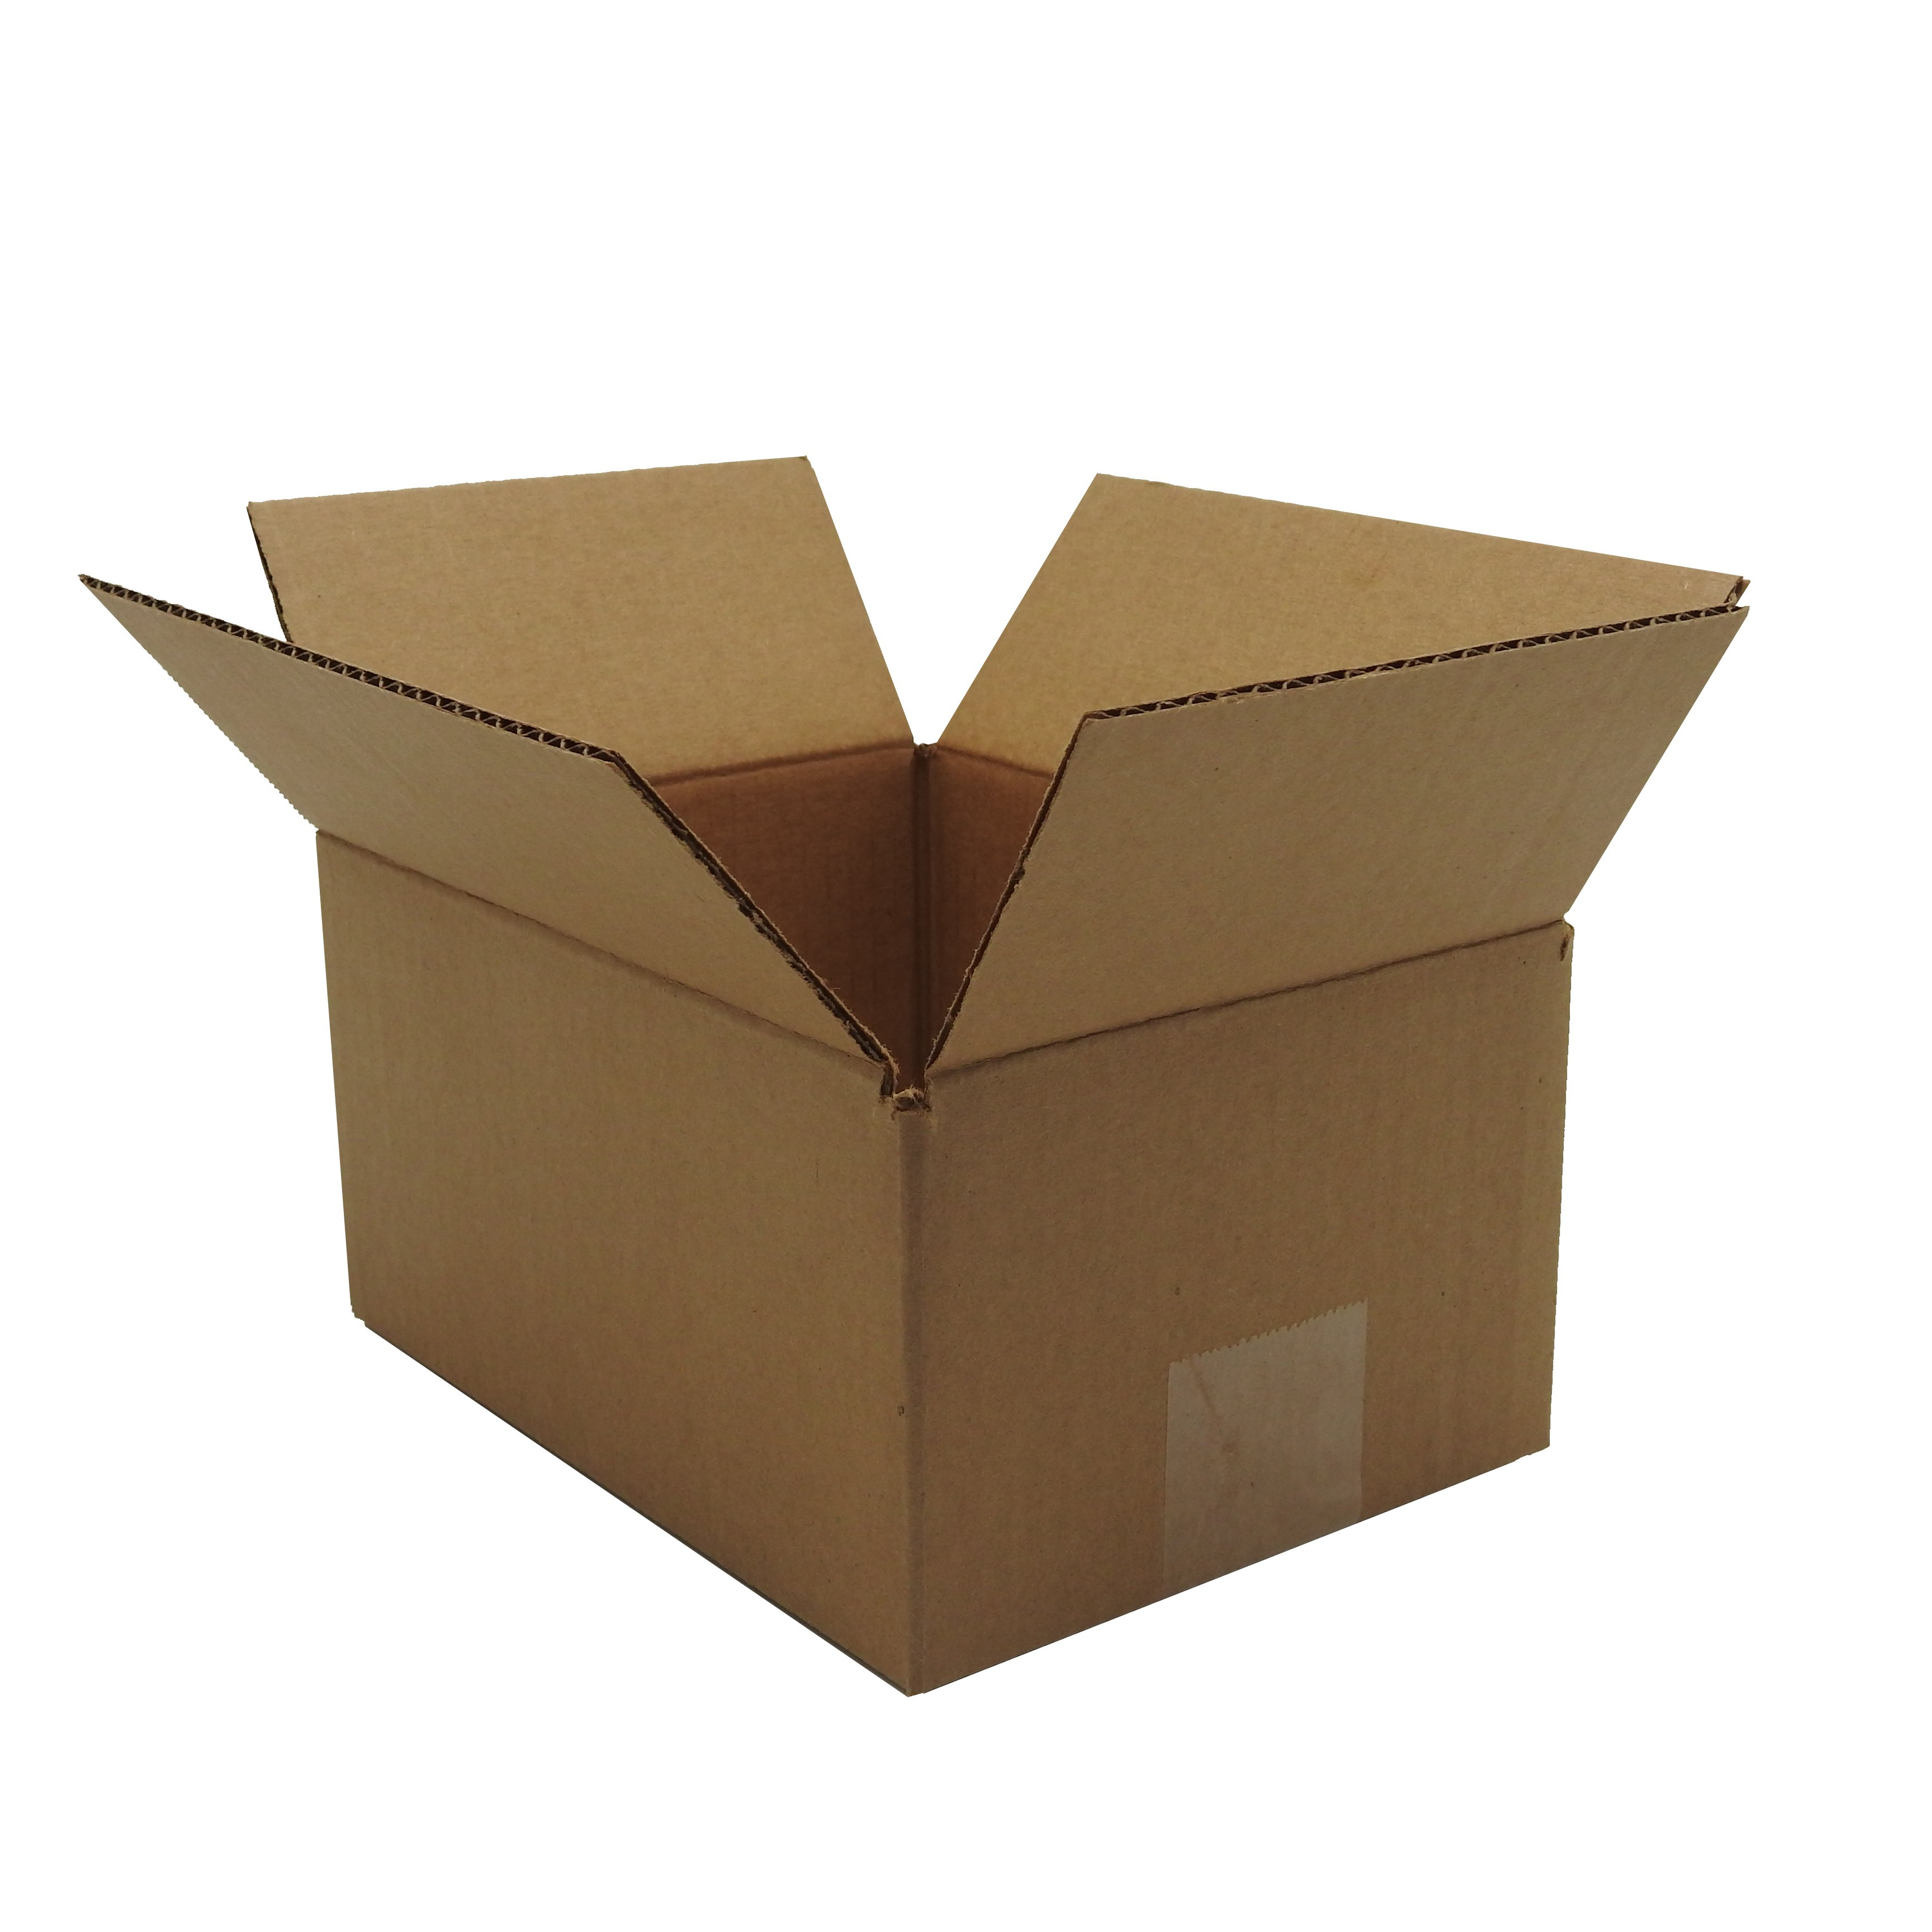 100 8x6x4 Corrugated Cardboard Shipping Mailing Packing Moving Boxes Box Carton